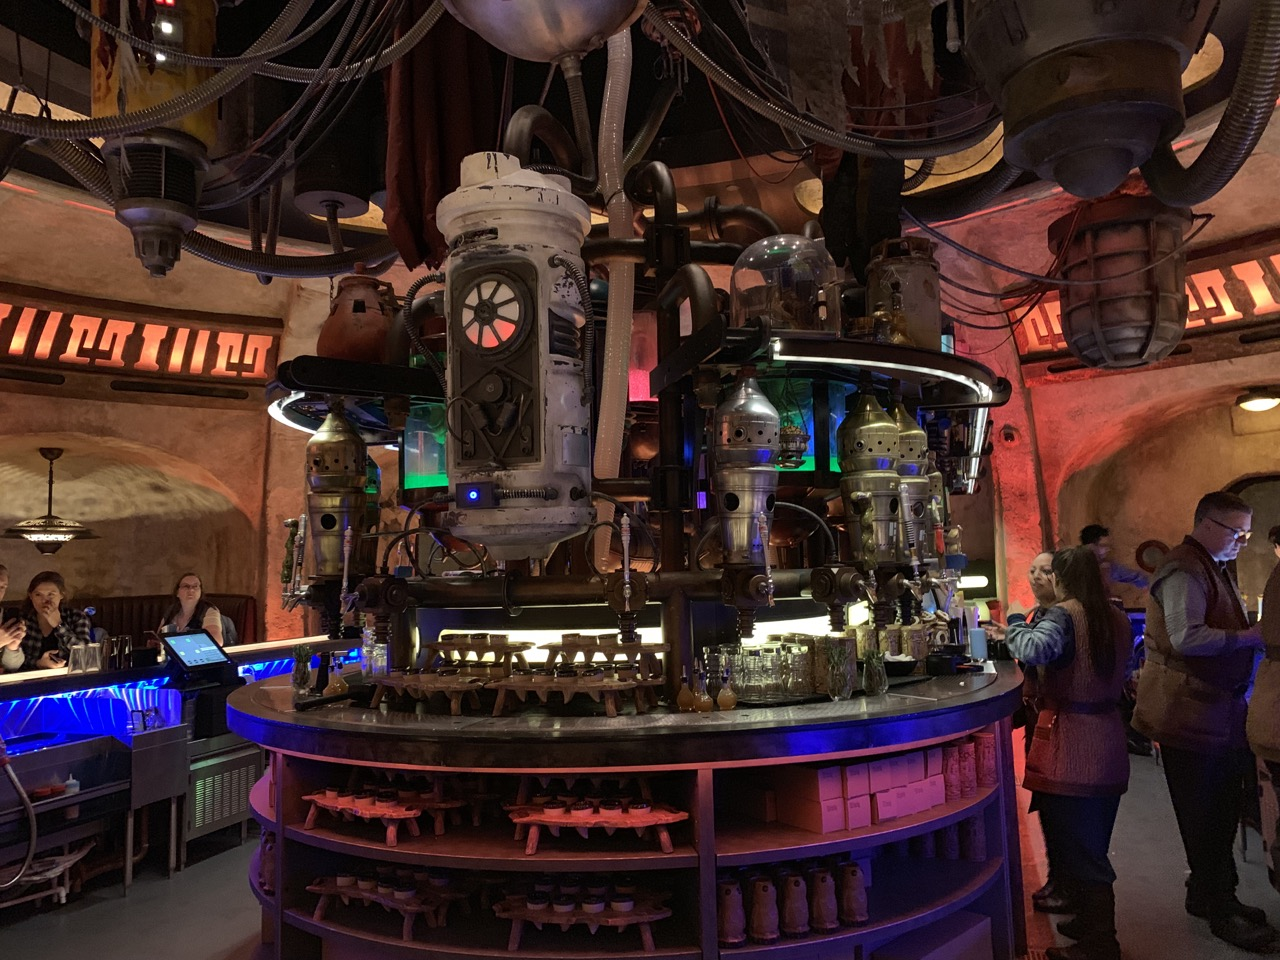 star wars land disneyland galaxys edge plan touring strategy 21 cantina.jpeg